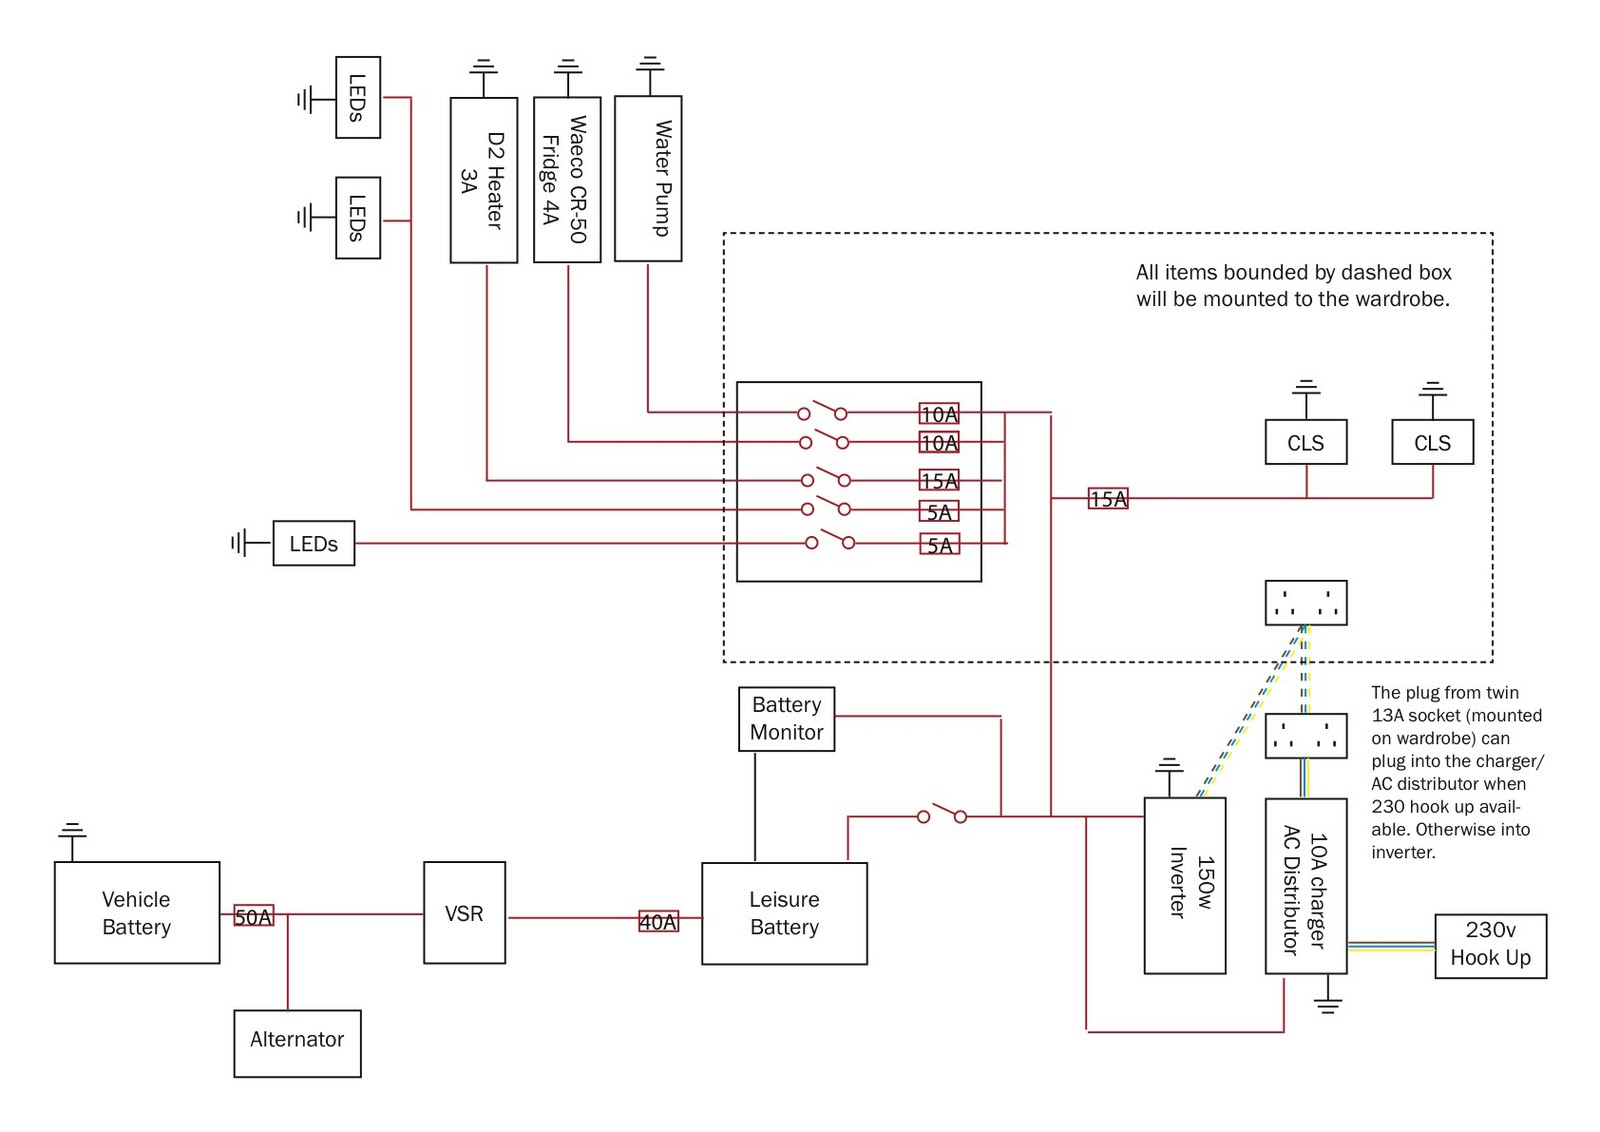 medium resolution of electronic ballast circuit diagram electrical schematic philips t5 ballast wiring diagram t5 ho ballast wiring diagram